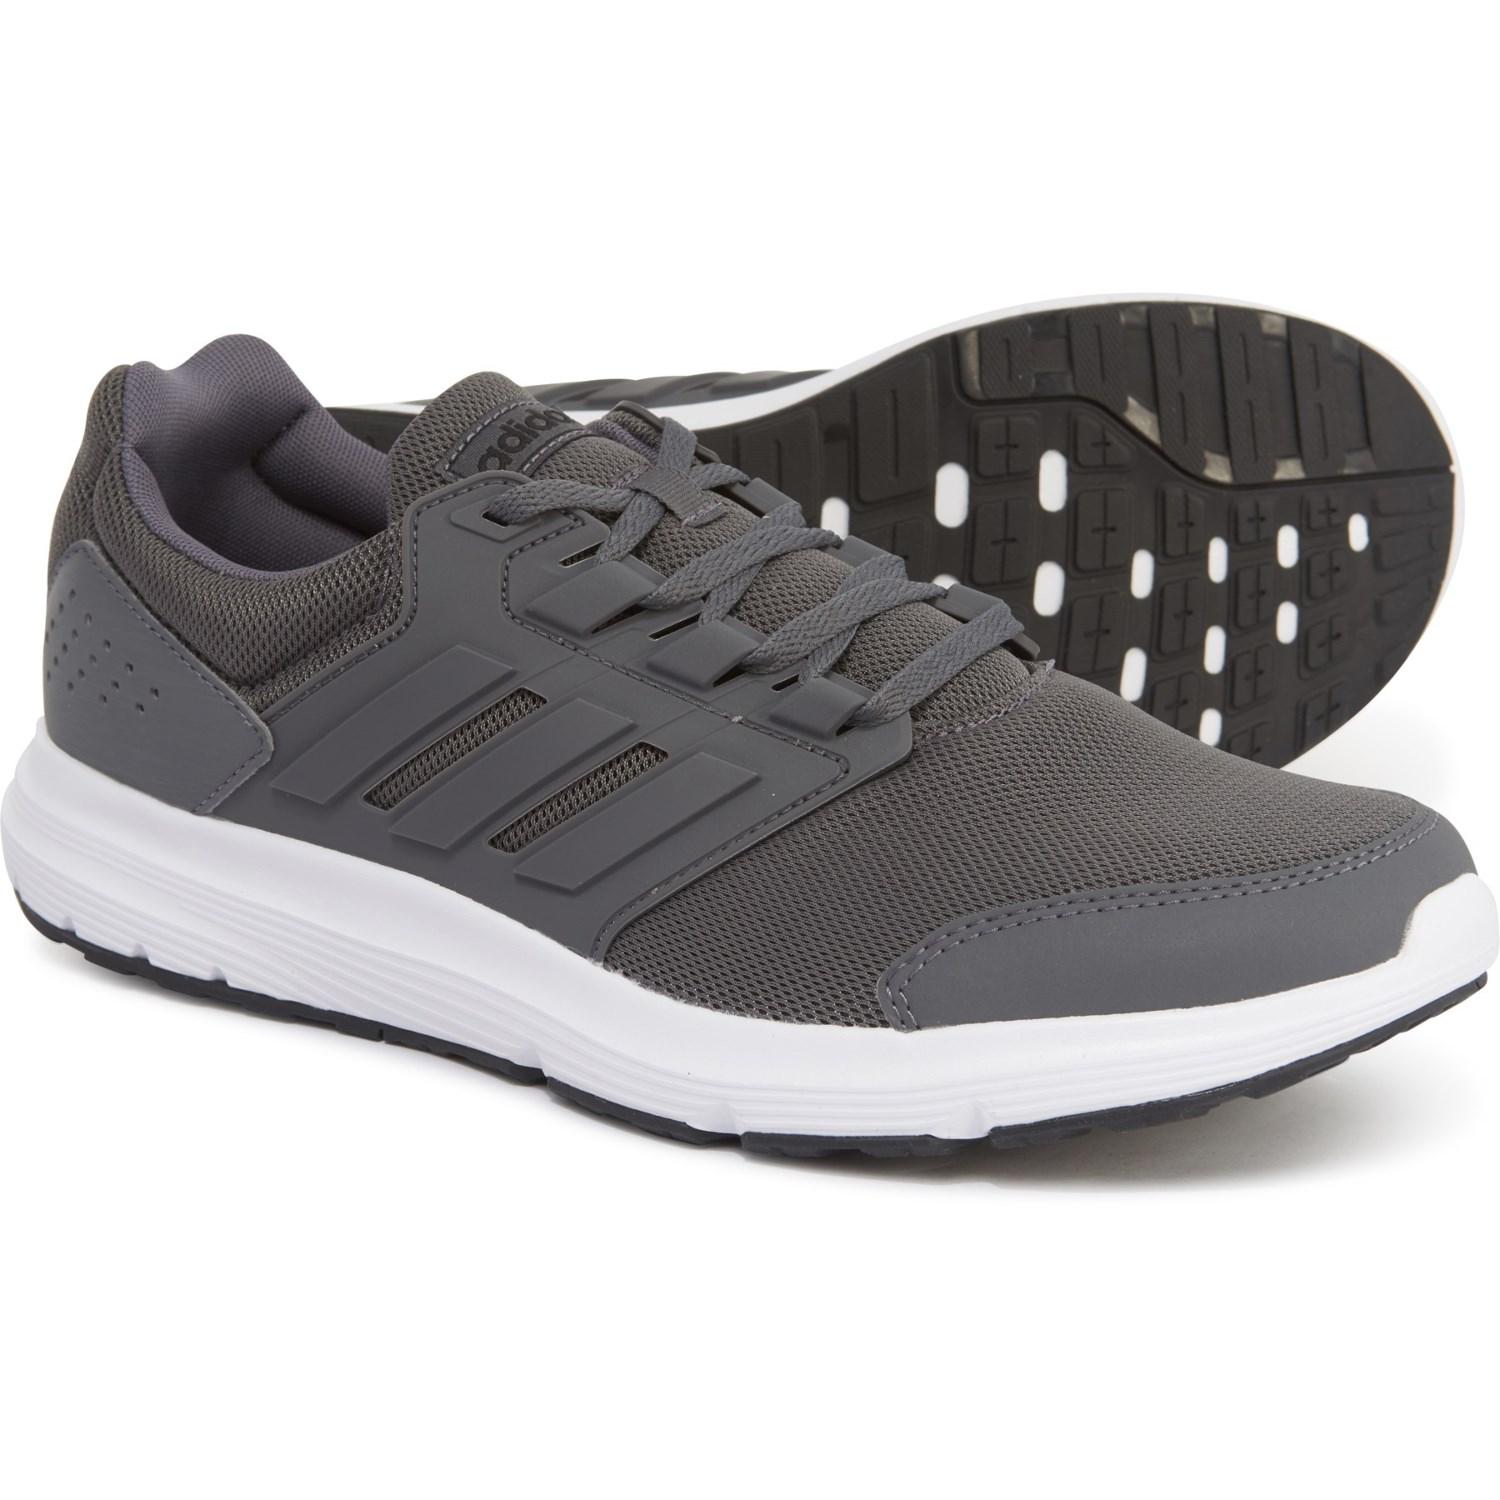 adidas Galaxy 4 Running Shoes in Gray